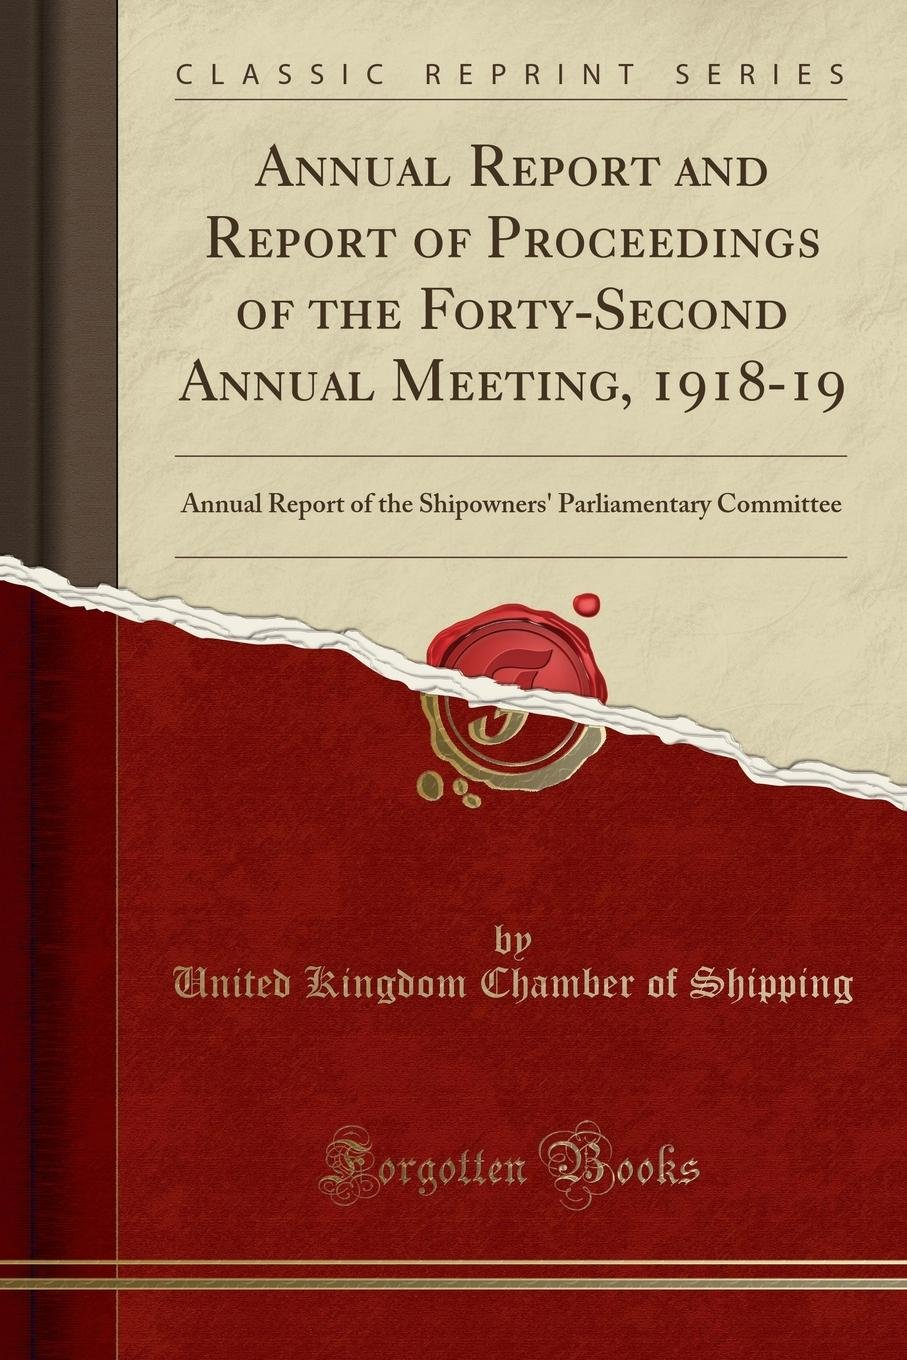 Download Annual Report and Report of Proceedings of the Forty-Second Annual Meeting, 1918-19: Annual Report of the Shipowners' Parliamentary Committee (Classic Reprint) pdf epub